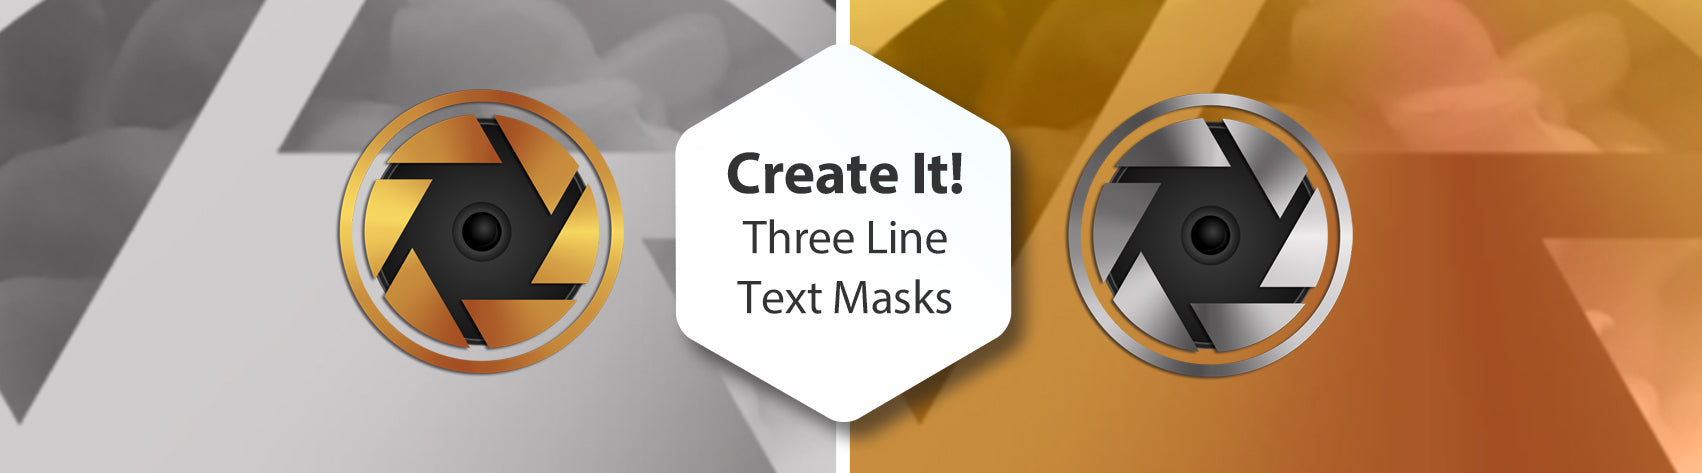 Create It! Three Line Text Masks